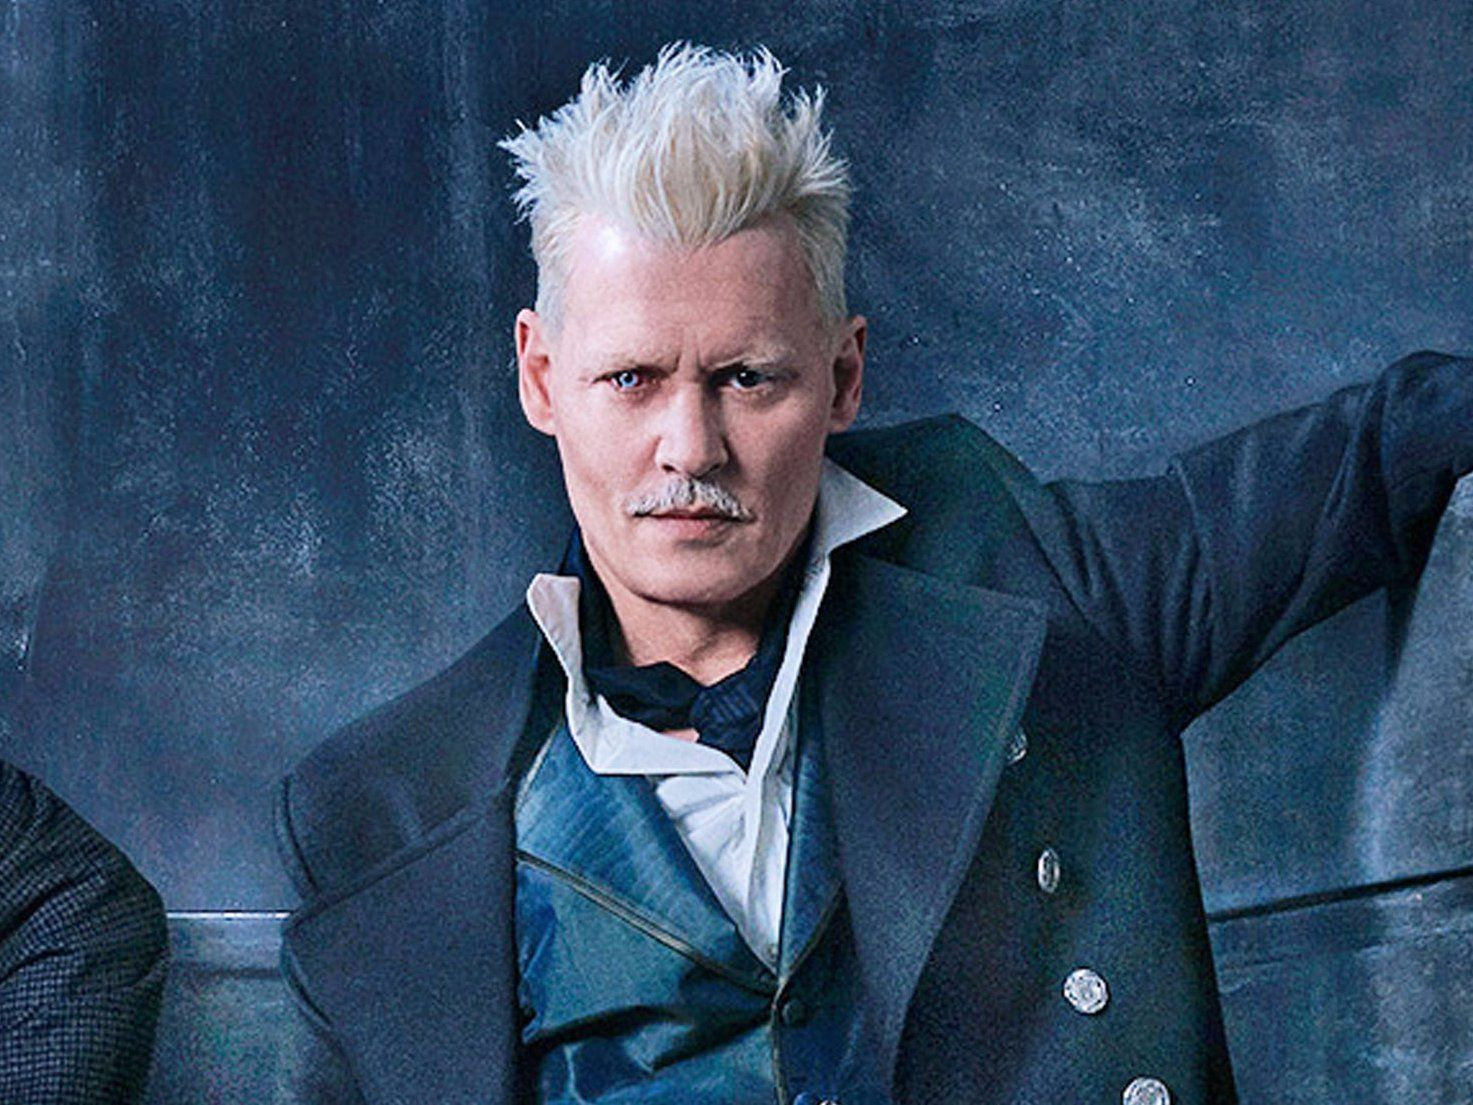 Fantastic Beasts Director Defends Keeping Johnny Depp In The Movie Amid Serious Backlash From Fans It S A Dead Issue Harry Potter Grindelwald Harry Potter Tumblr Fantastic Beasts